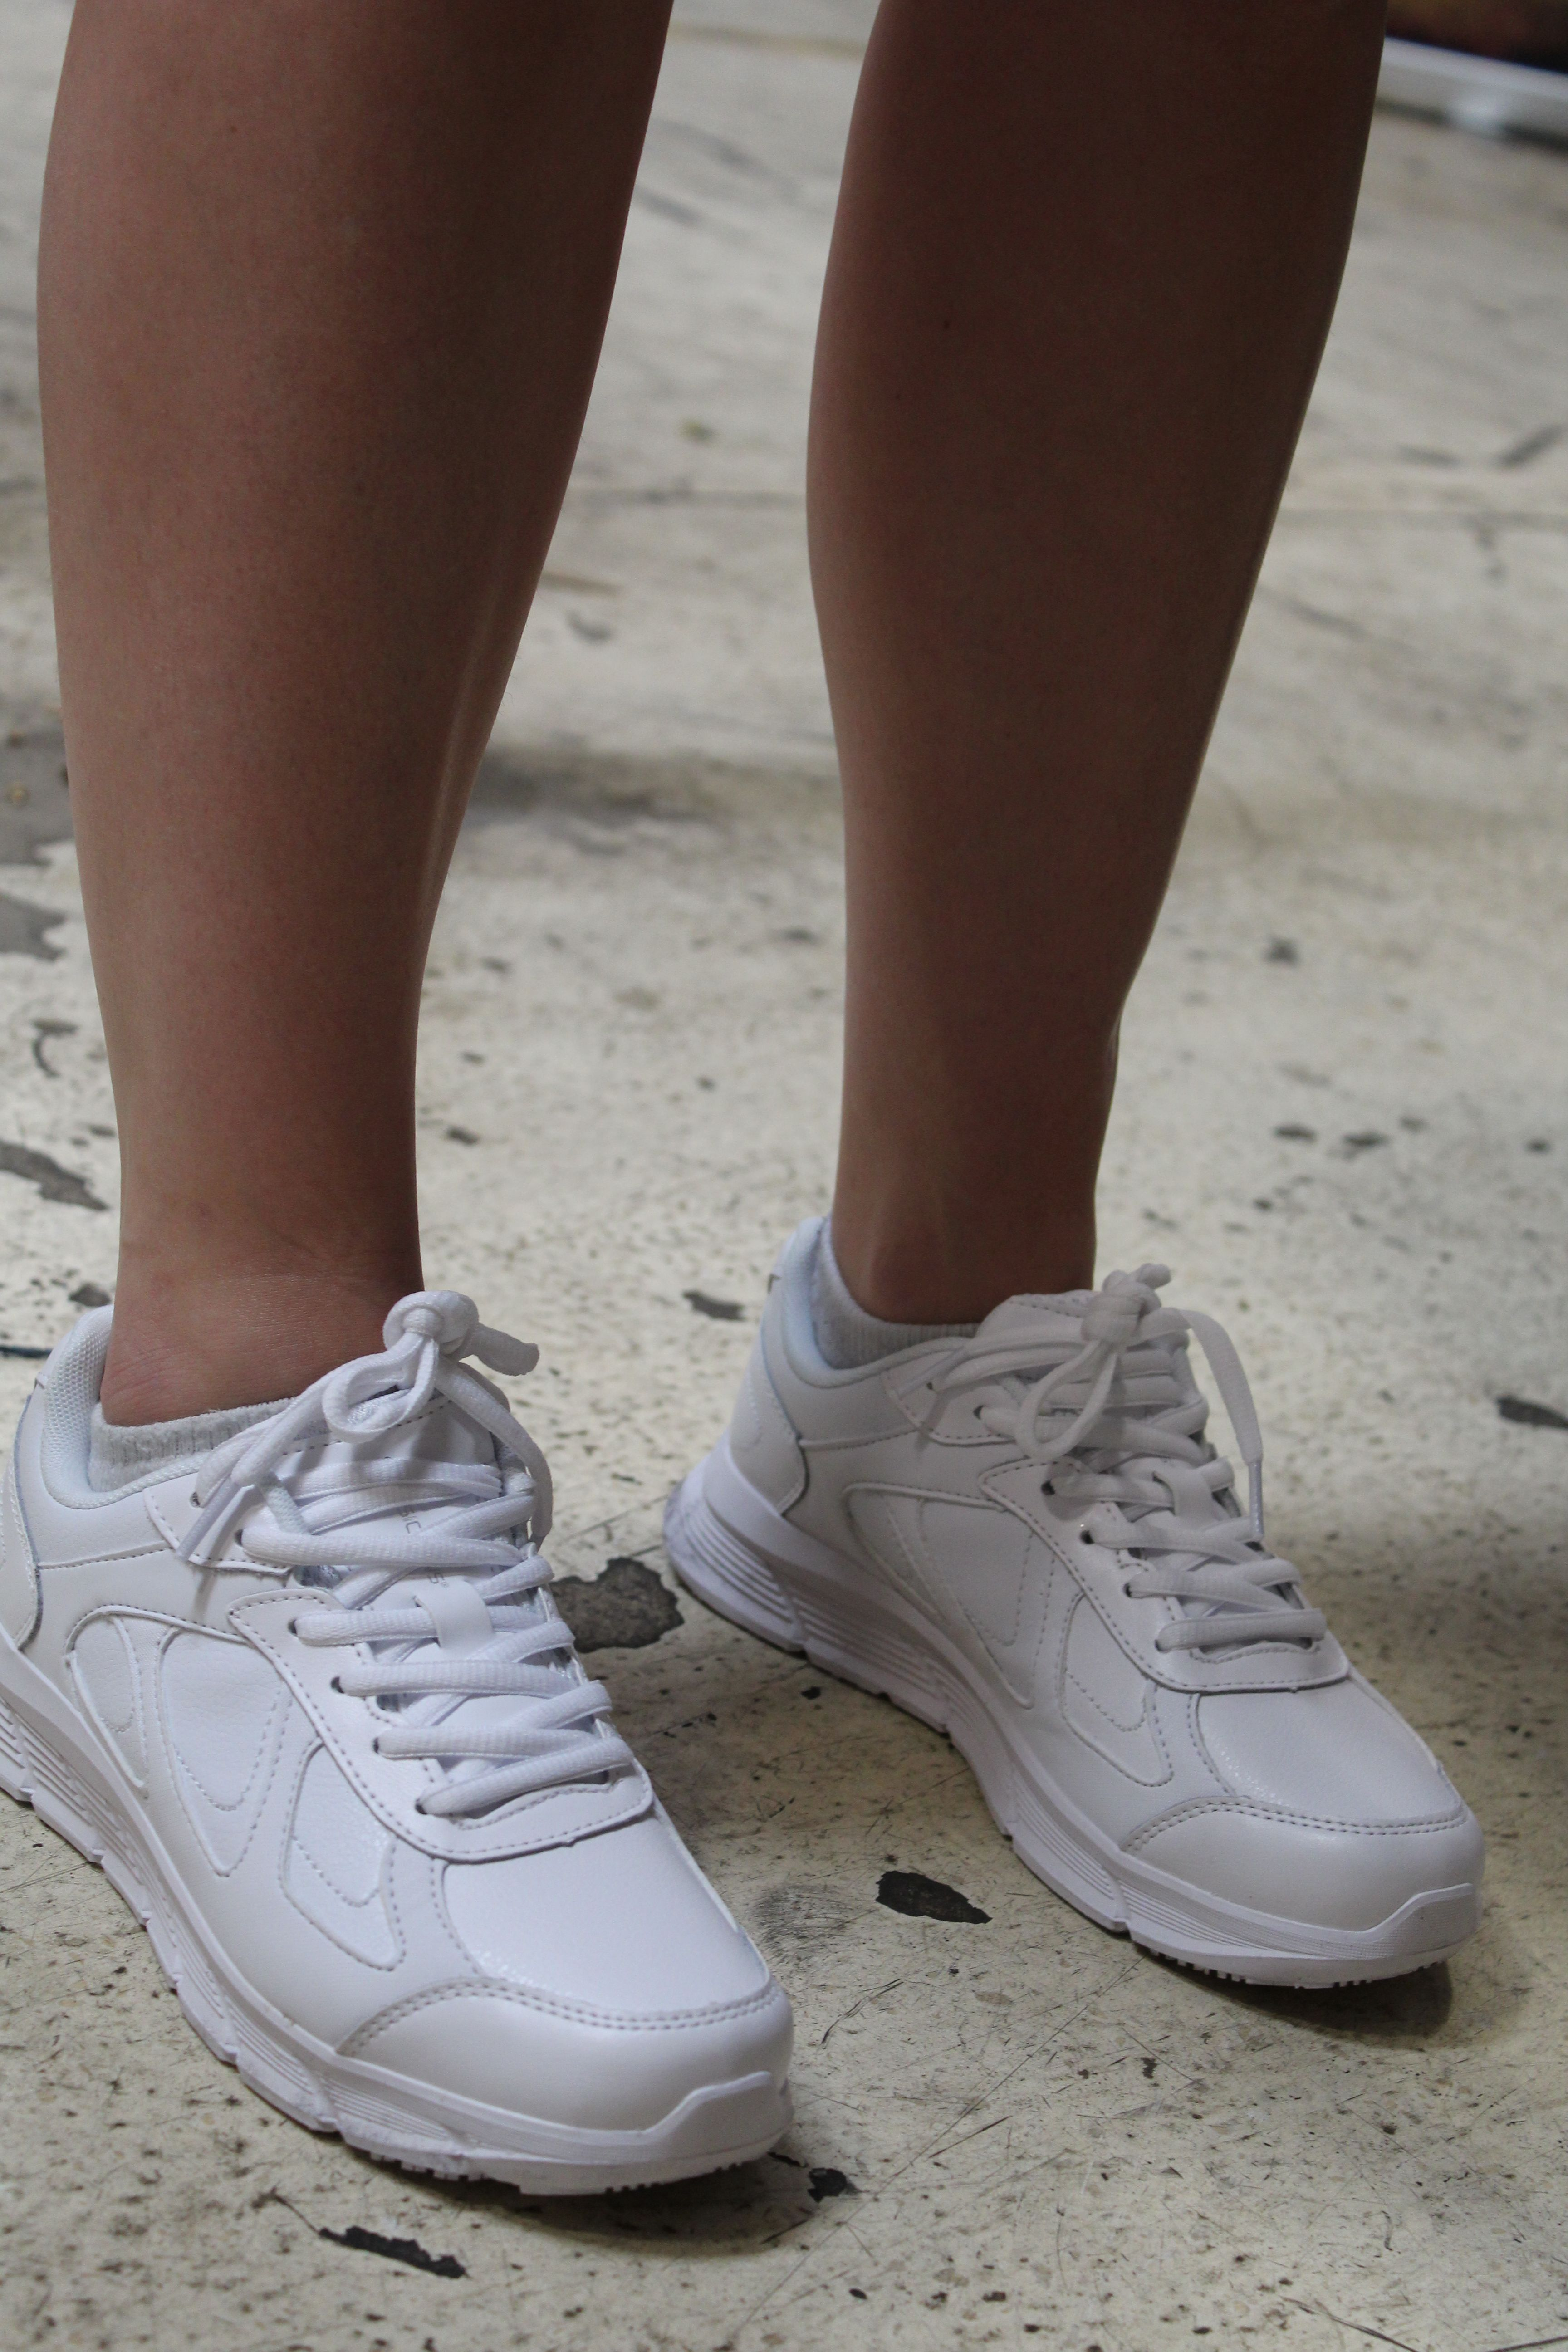 Slip resistant shoes, Sneakers, Leather